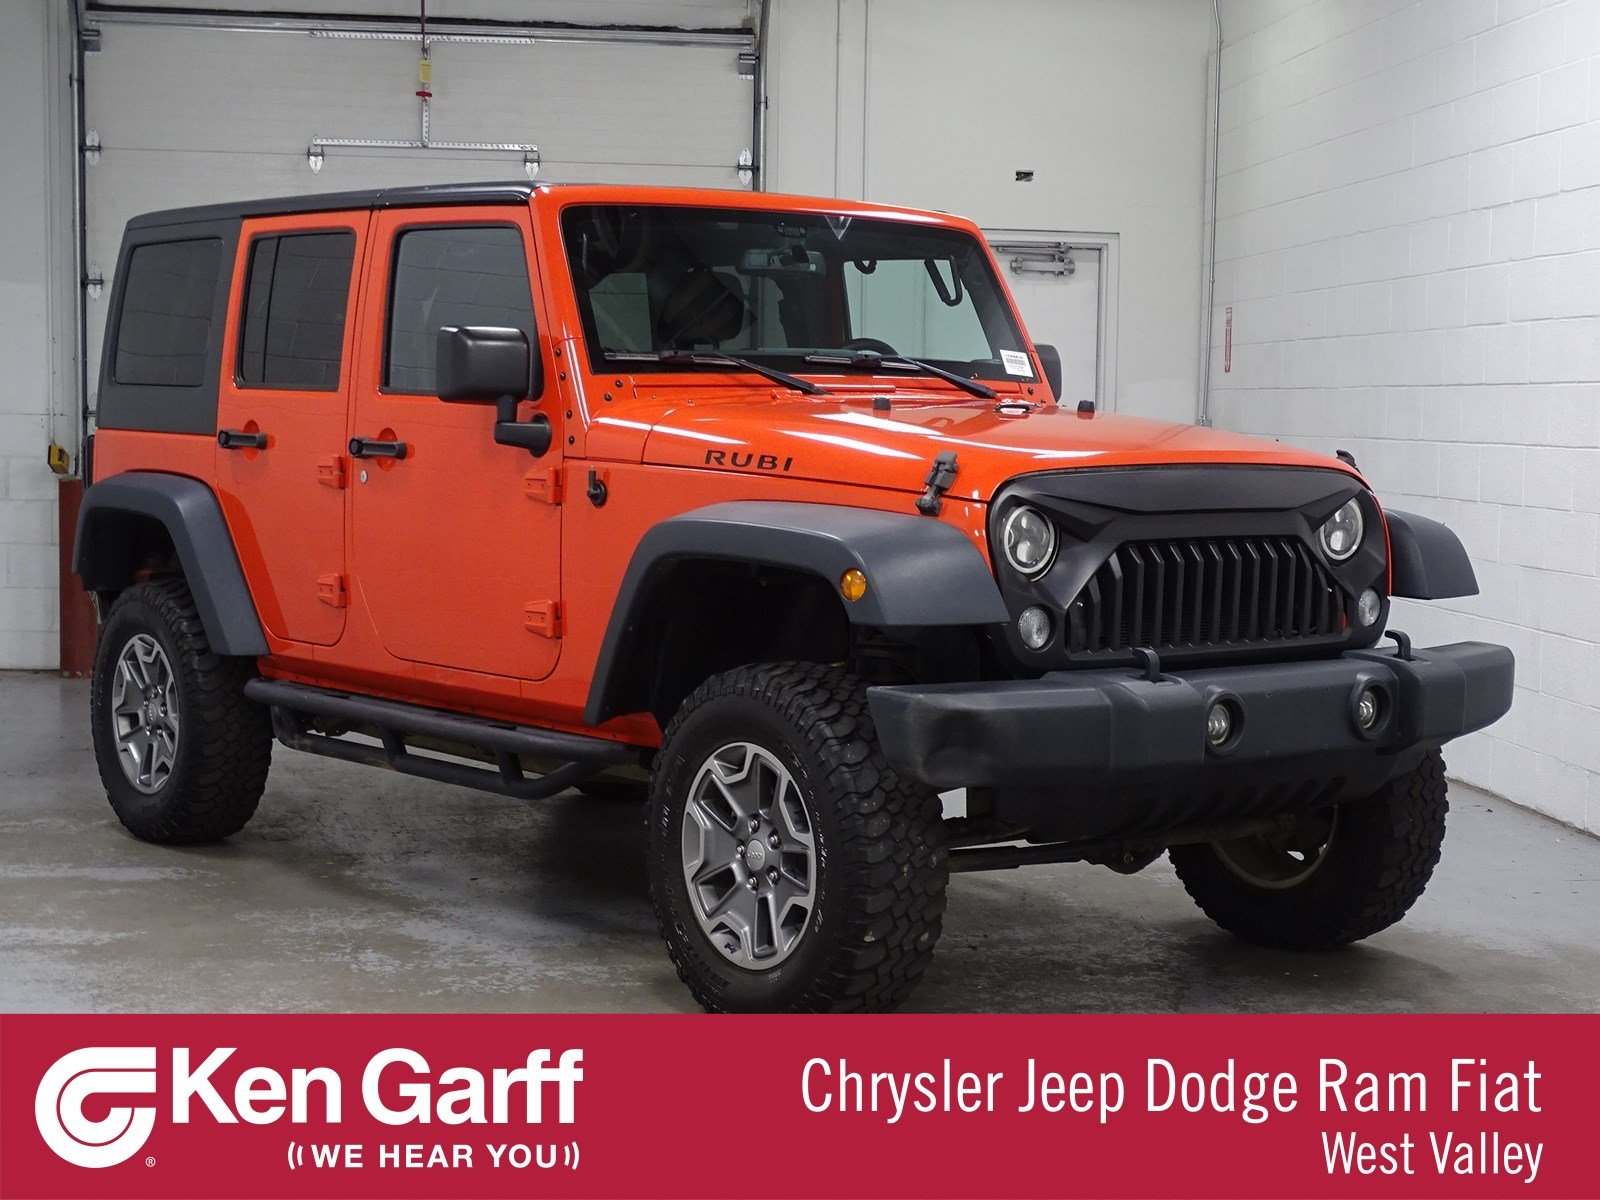 Certified Pre Owned Jeep >> Certified Pre Owned Jeep Wrangler Unlimited Rubicon With Navigation 4wd